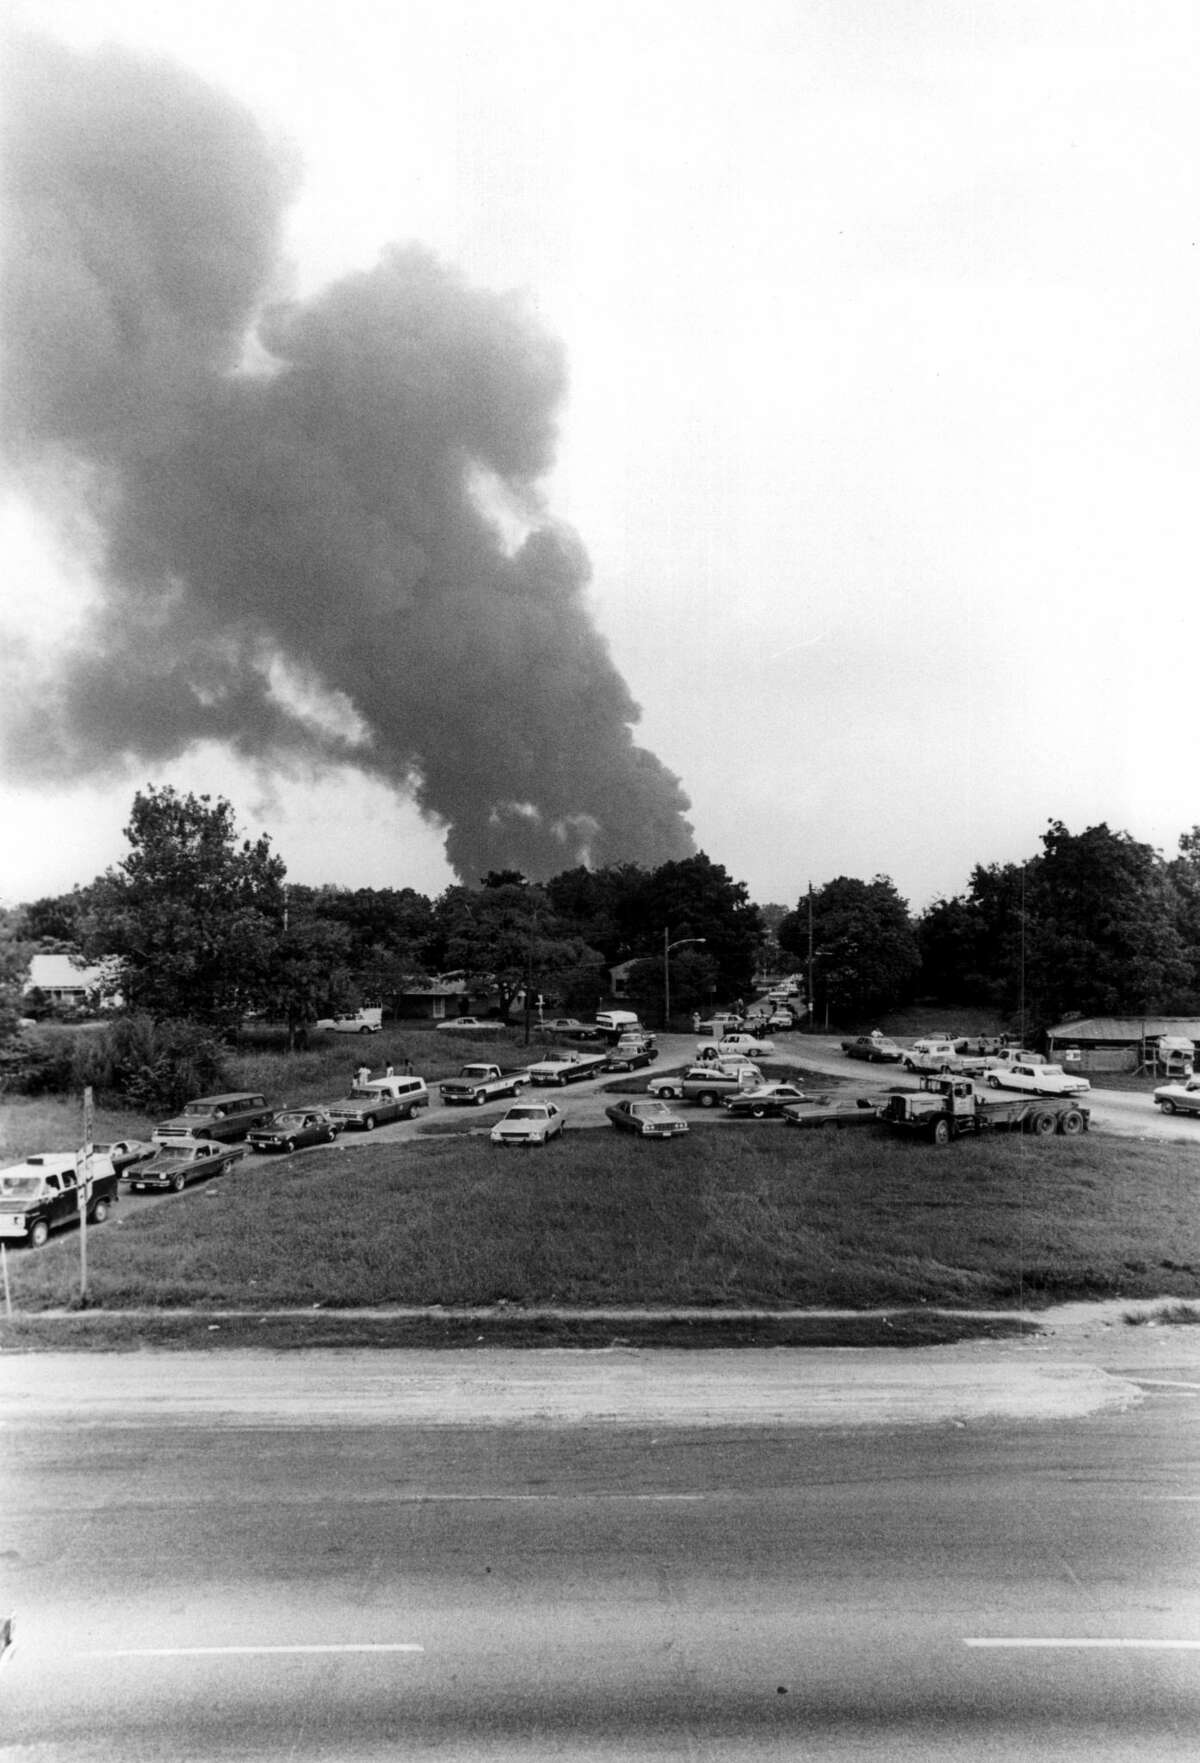 September 21, 1974: Explosion and fire at Southern Pacific Englewod Yard.